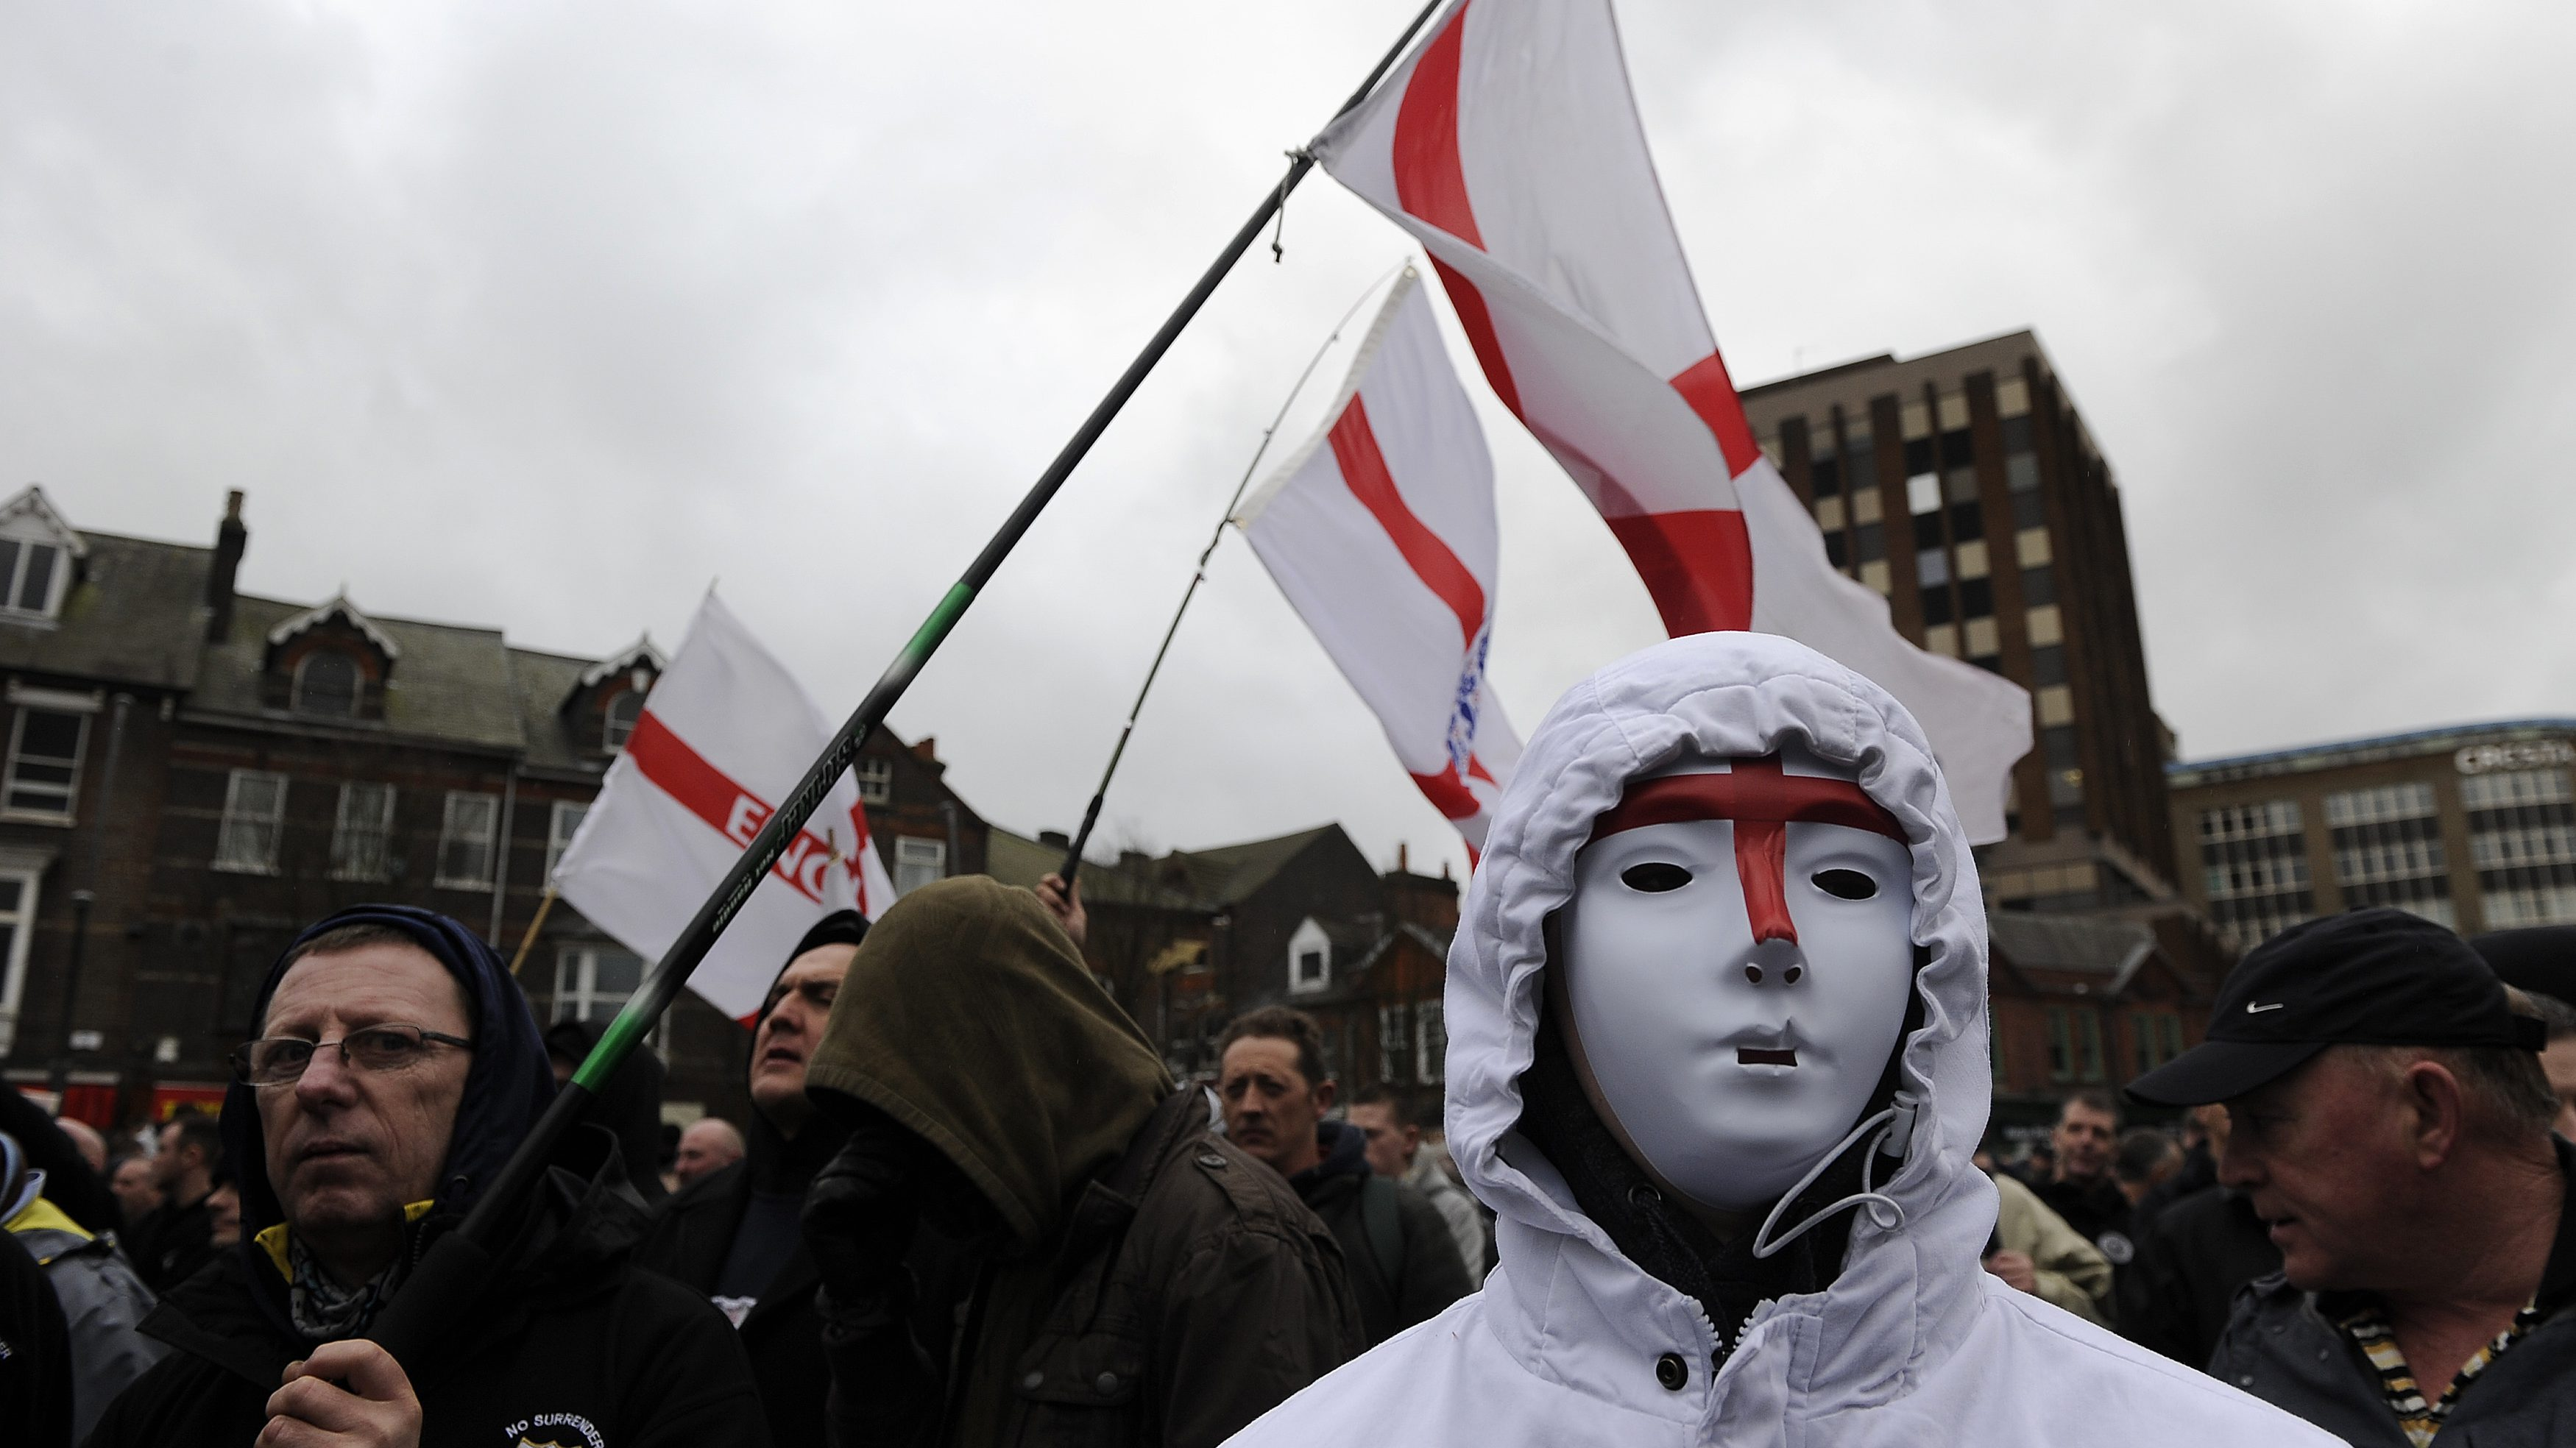 Supporters of the English Defence League gather for a rally in central  Luton